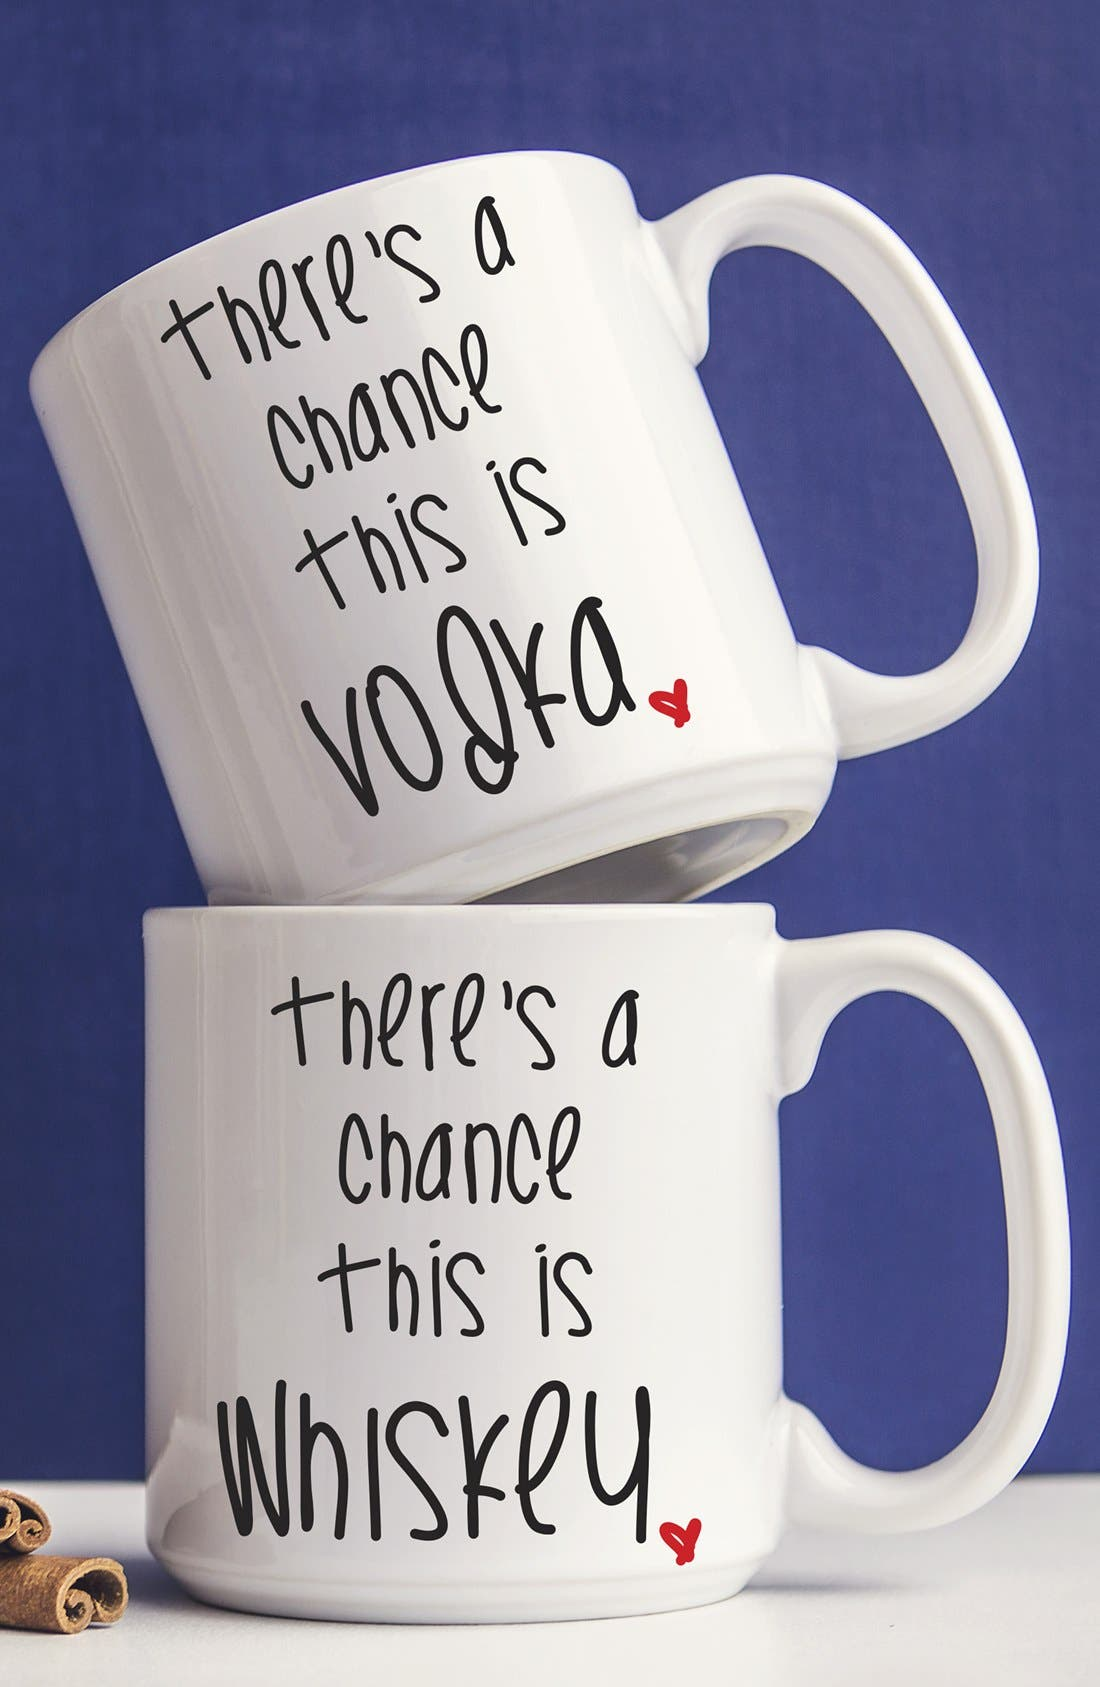 Cathy's Concepts 'There's a Chance' Ceramic Coffee Mugs (Set of 2)